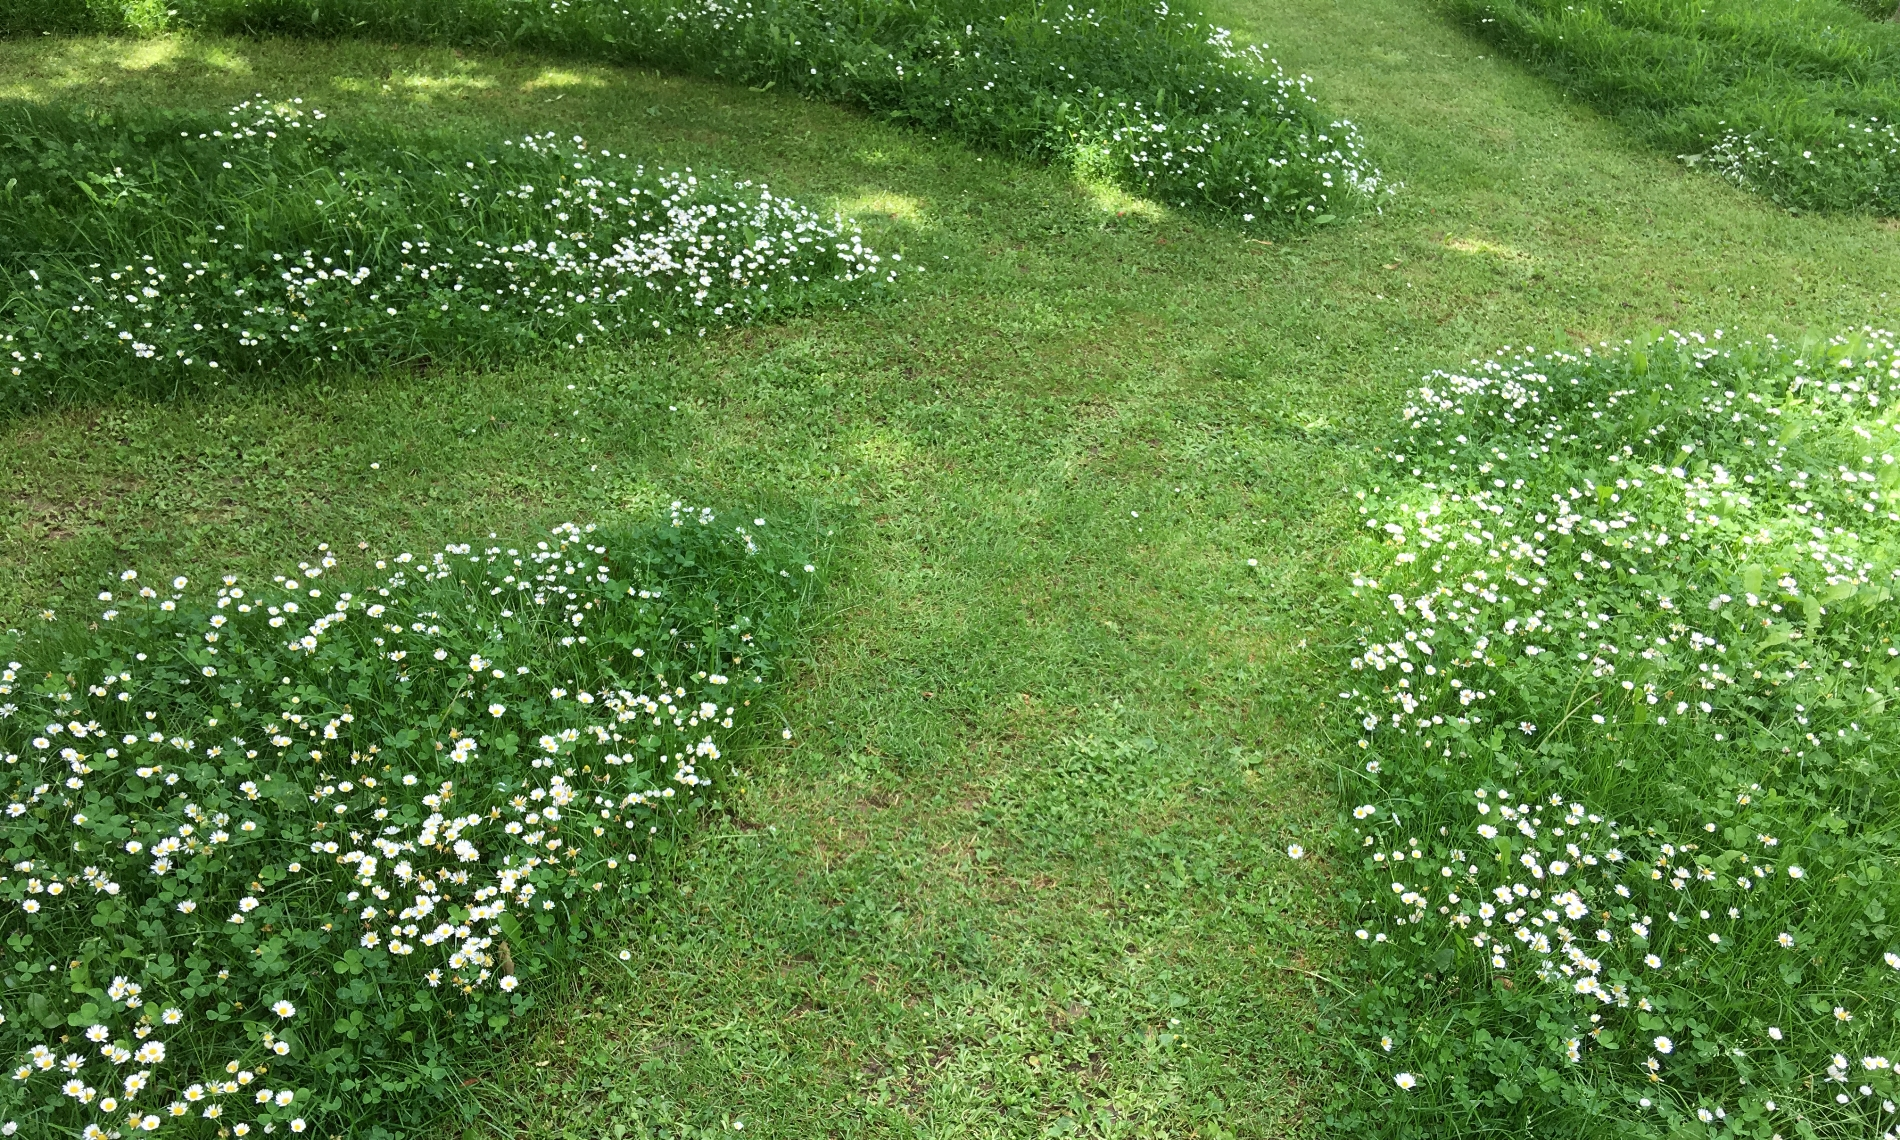 Mow paths through the lawn leaving wild flowers to grow for pollinators and other wildlife